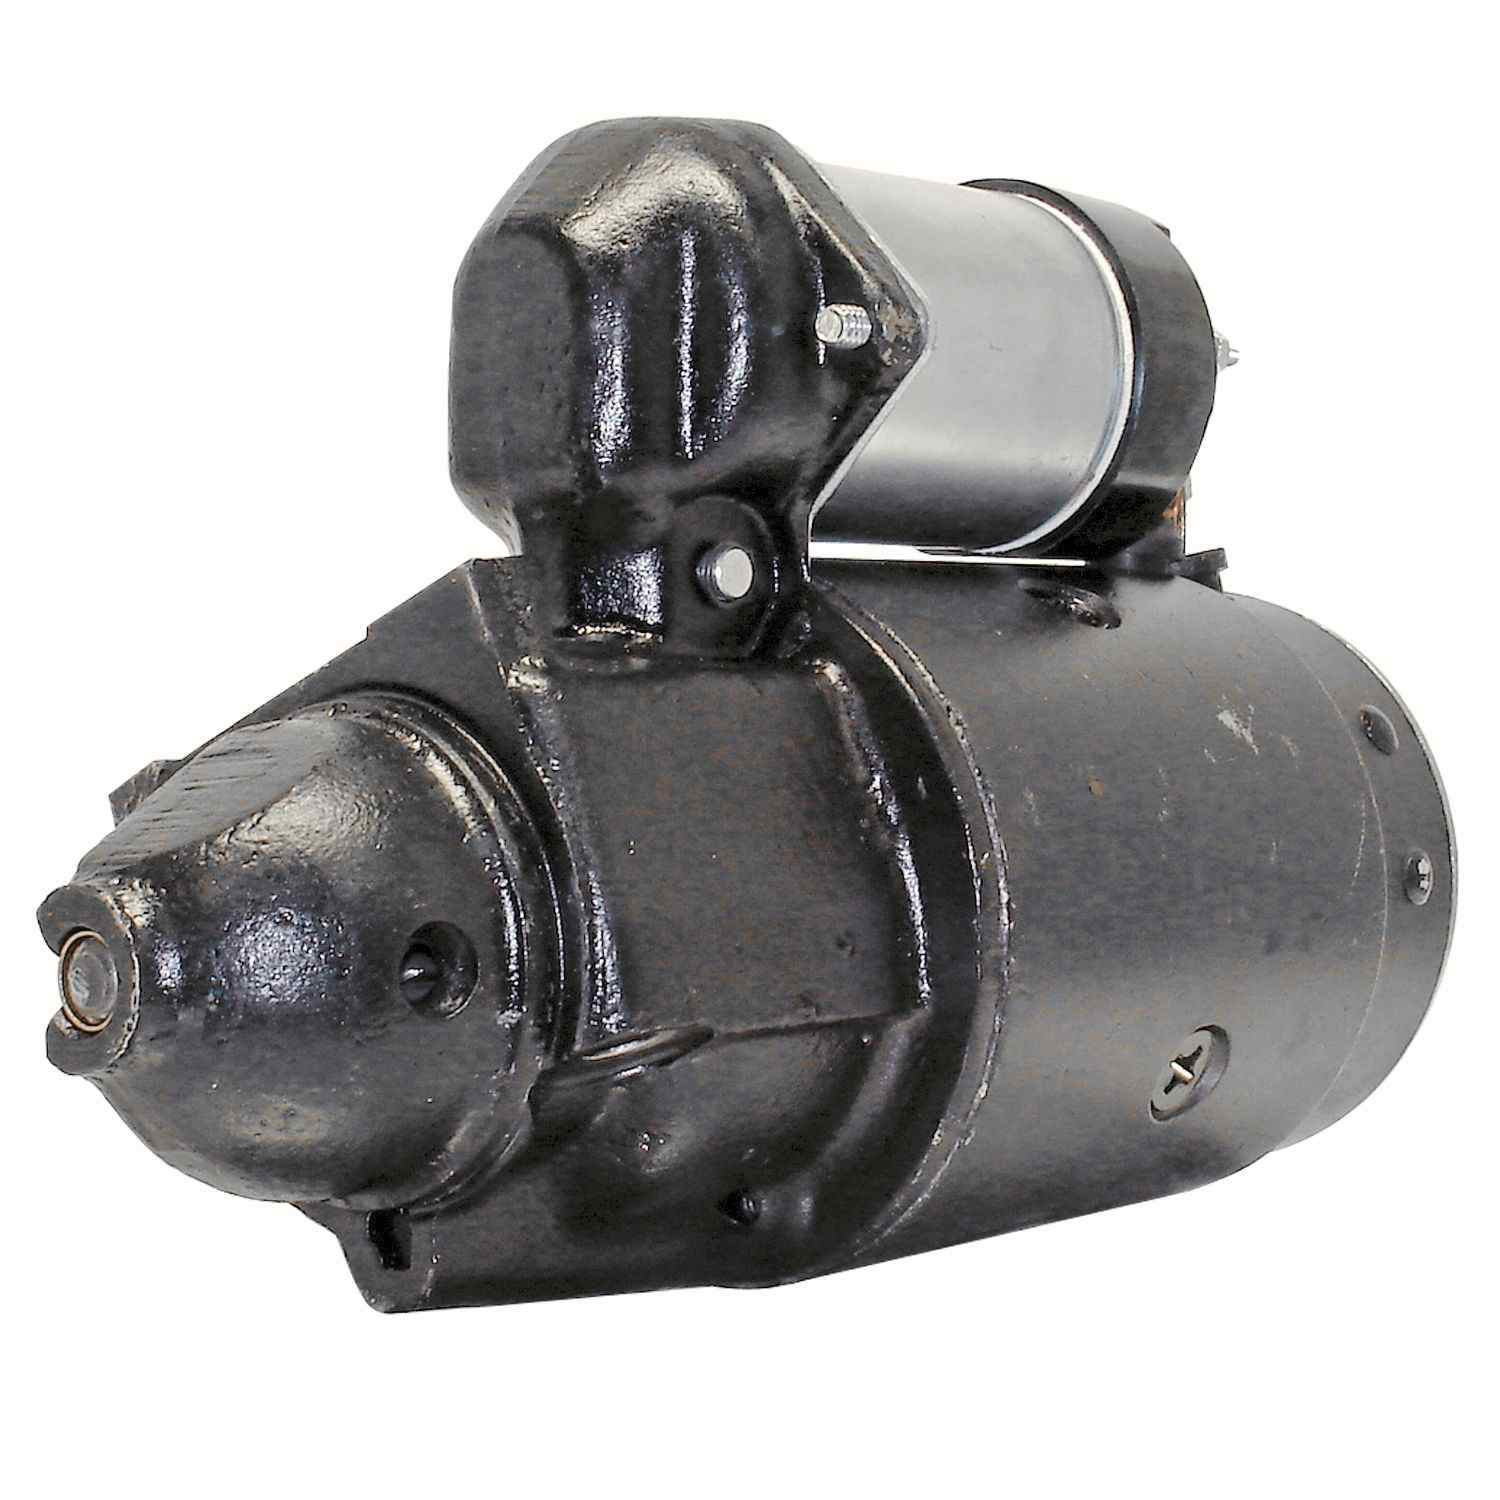 ACDELCO GOLD/PROFESSIONAL - Reman Starter Motor - DCC 336-1836